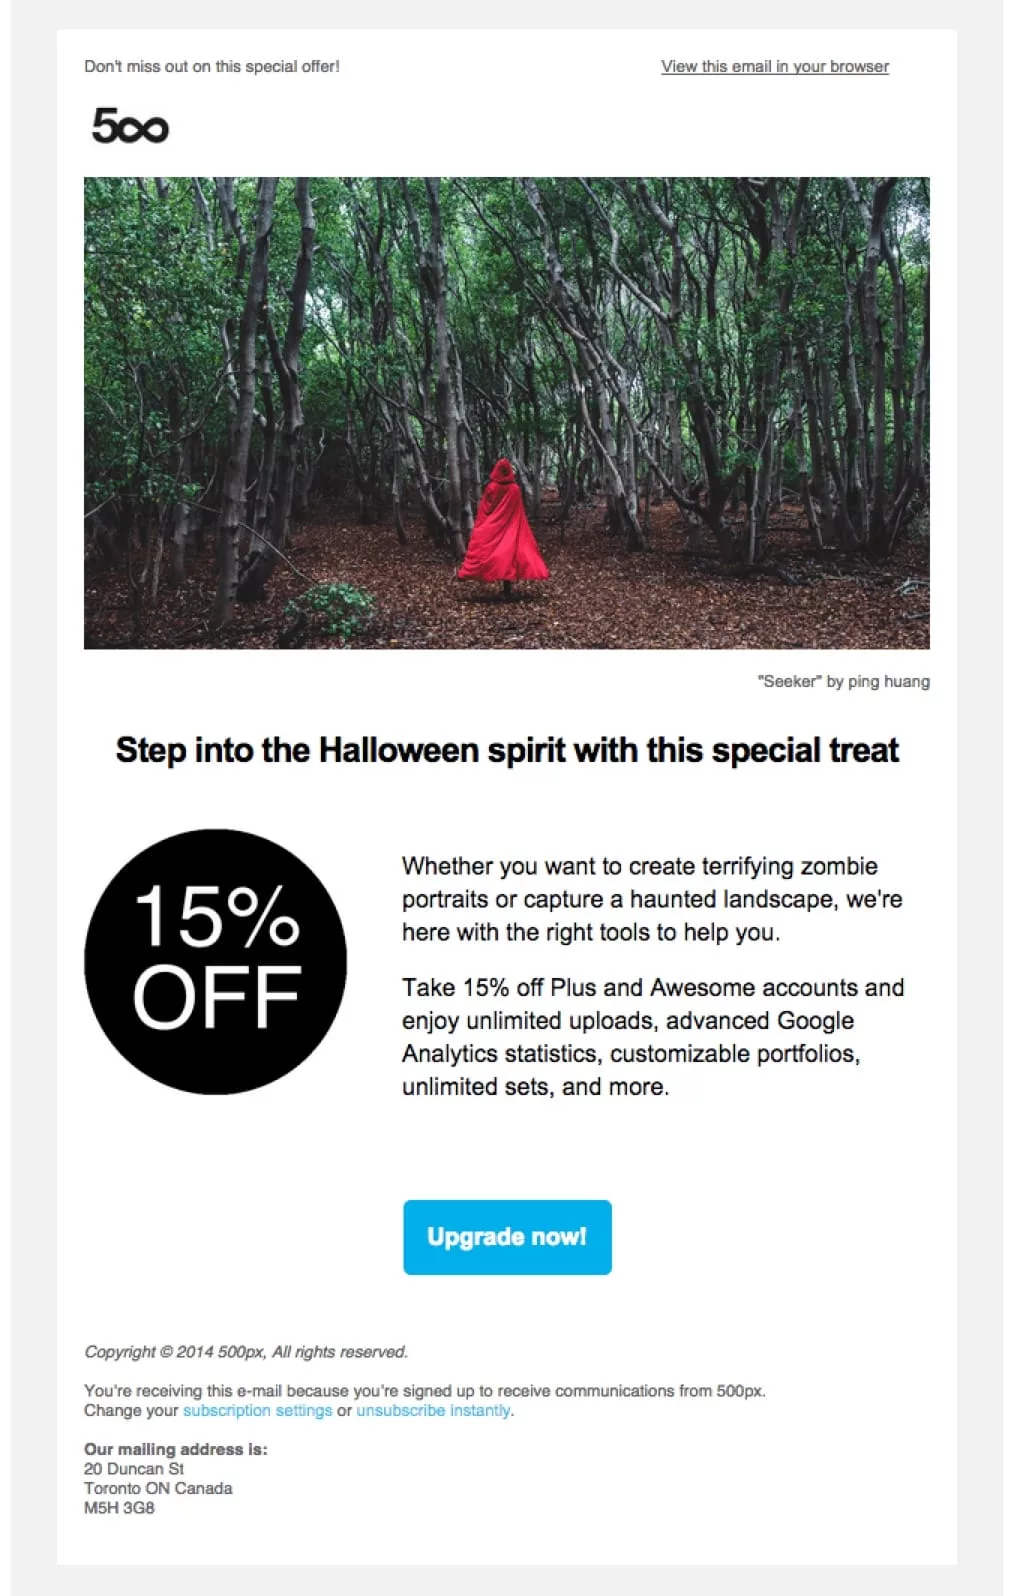 promotional email marketing example